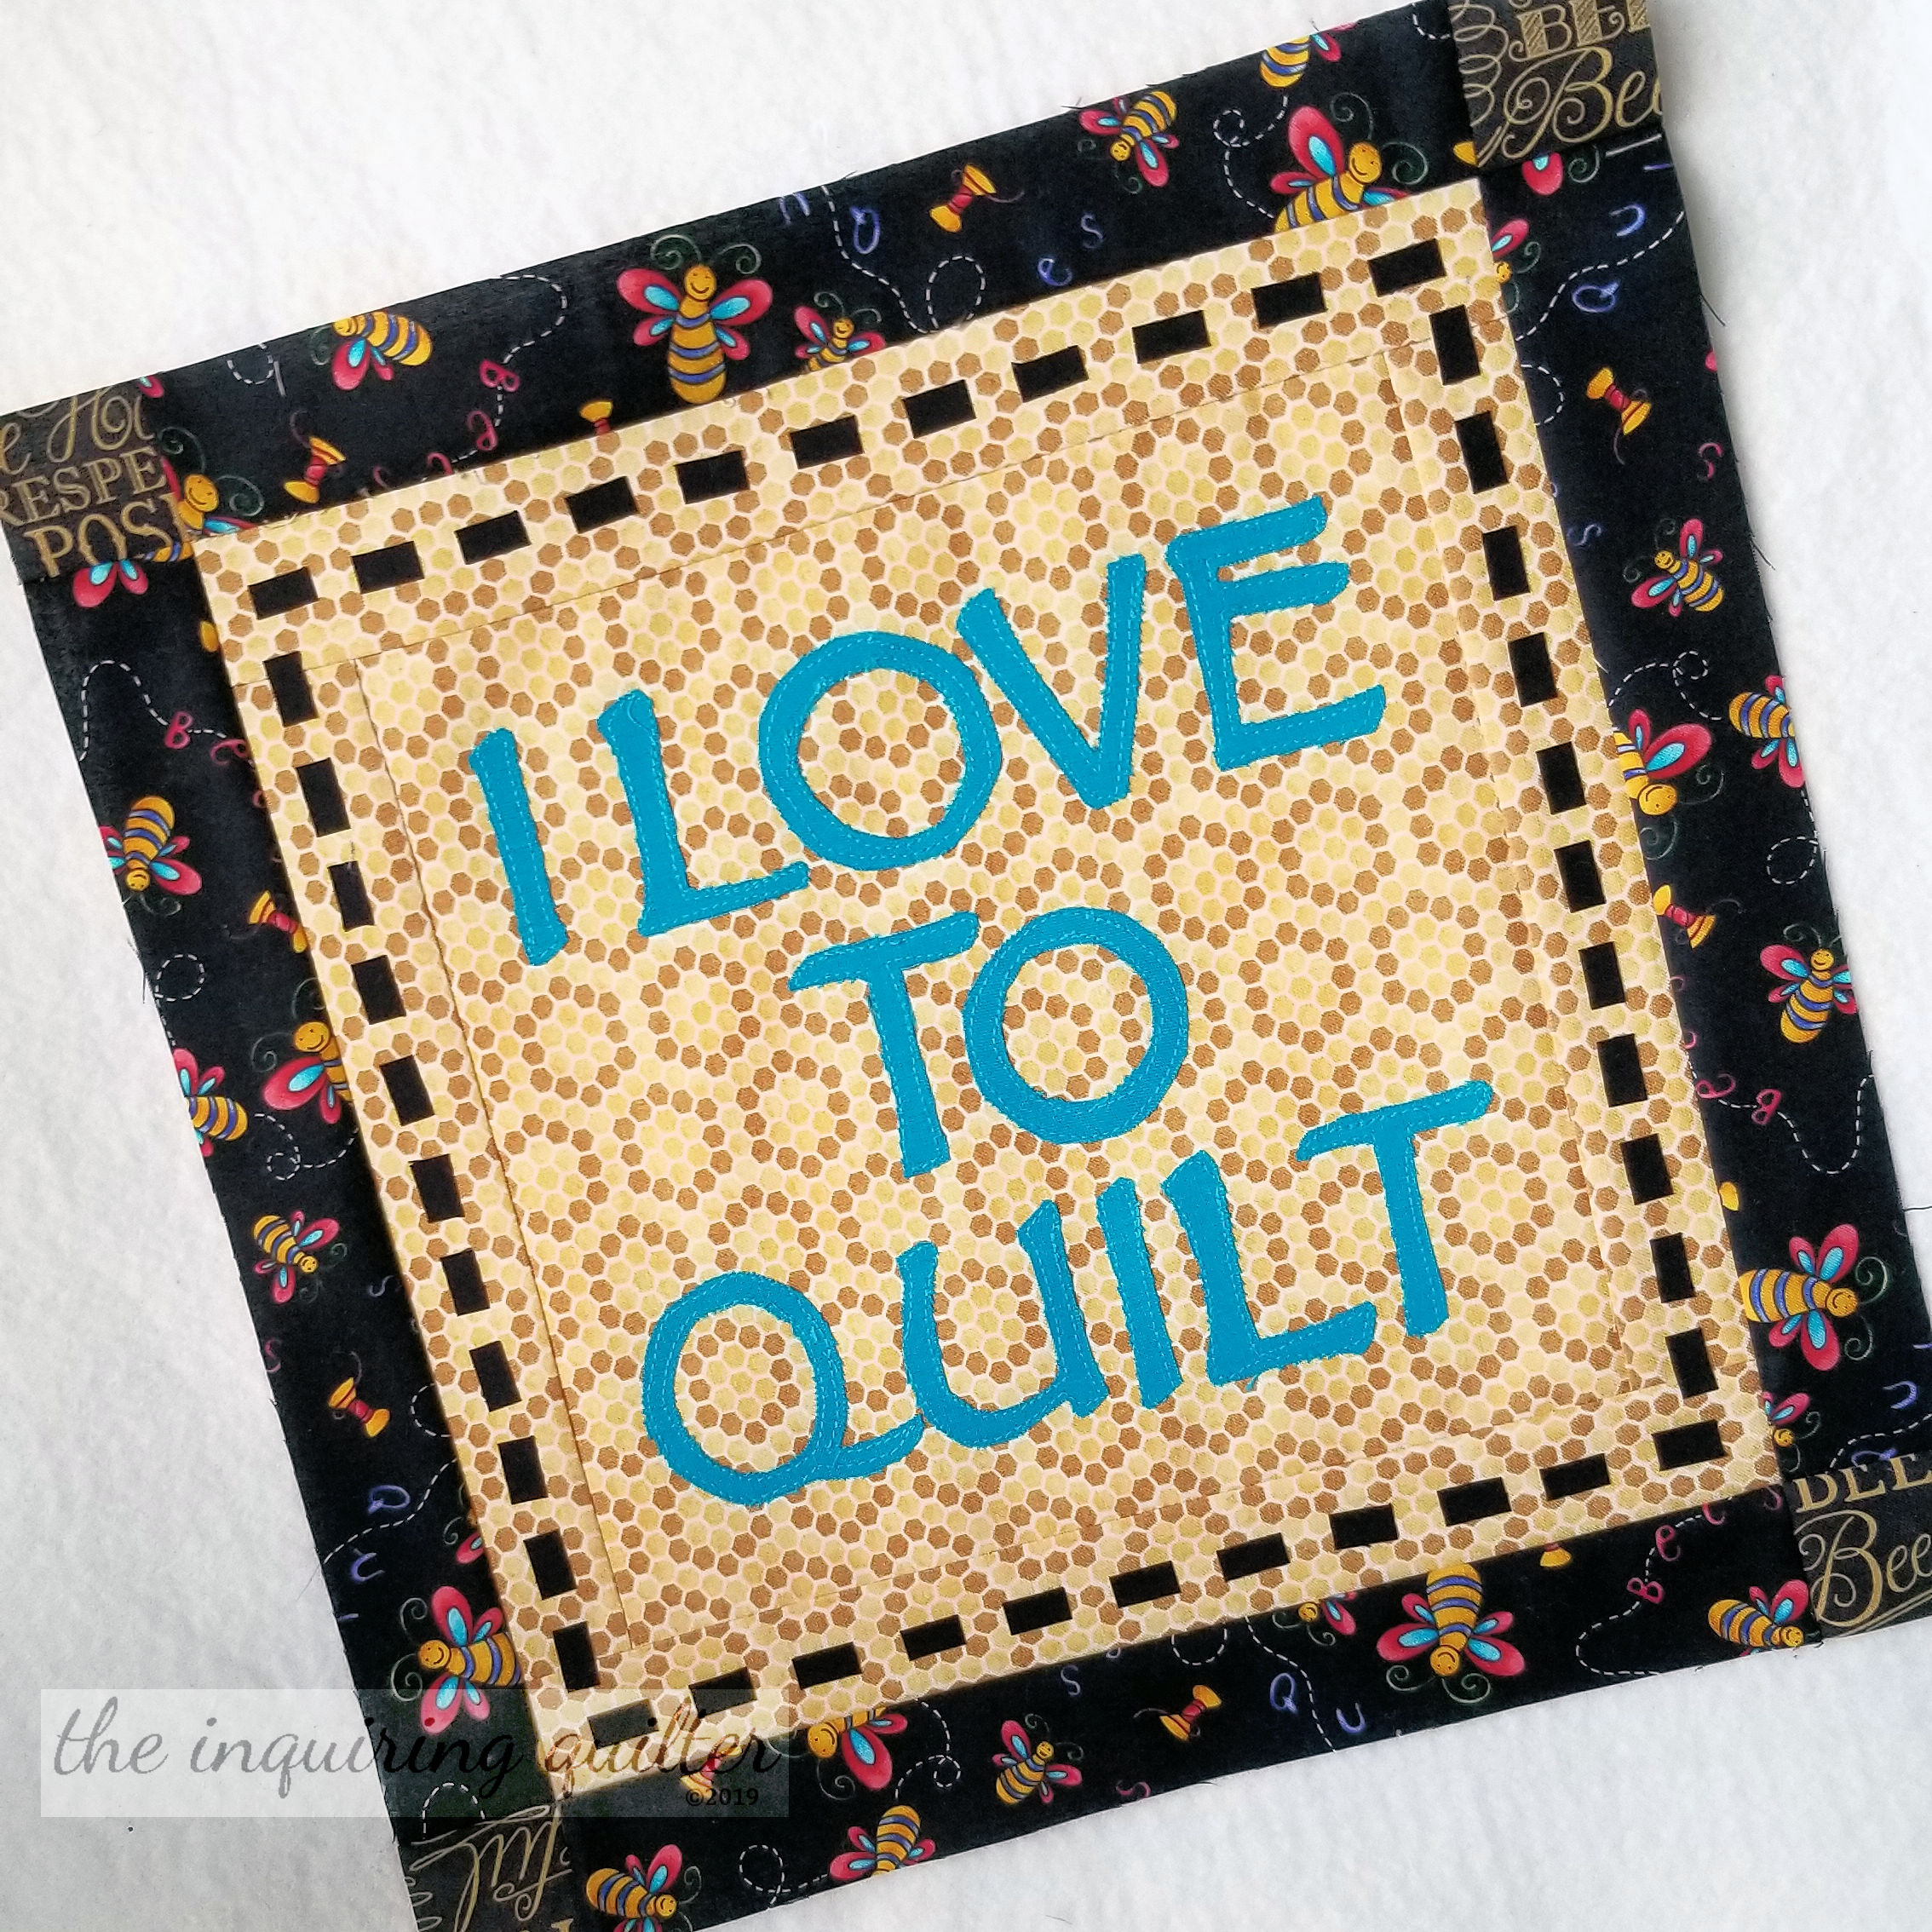 I Love to Quilt block 2.jpg